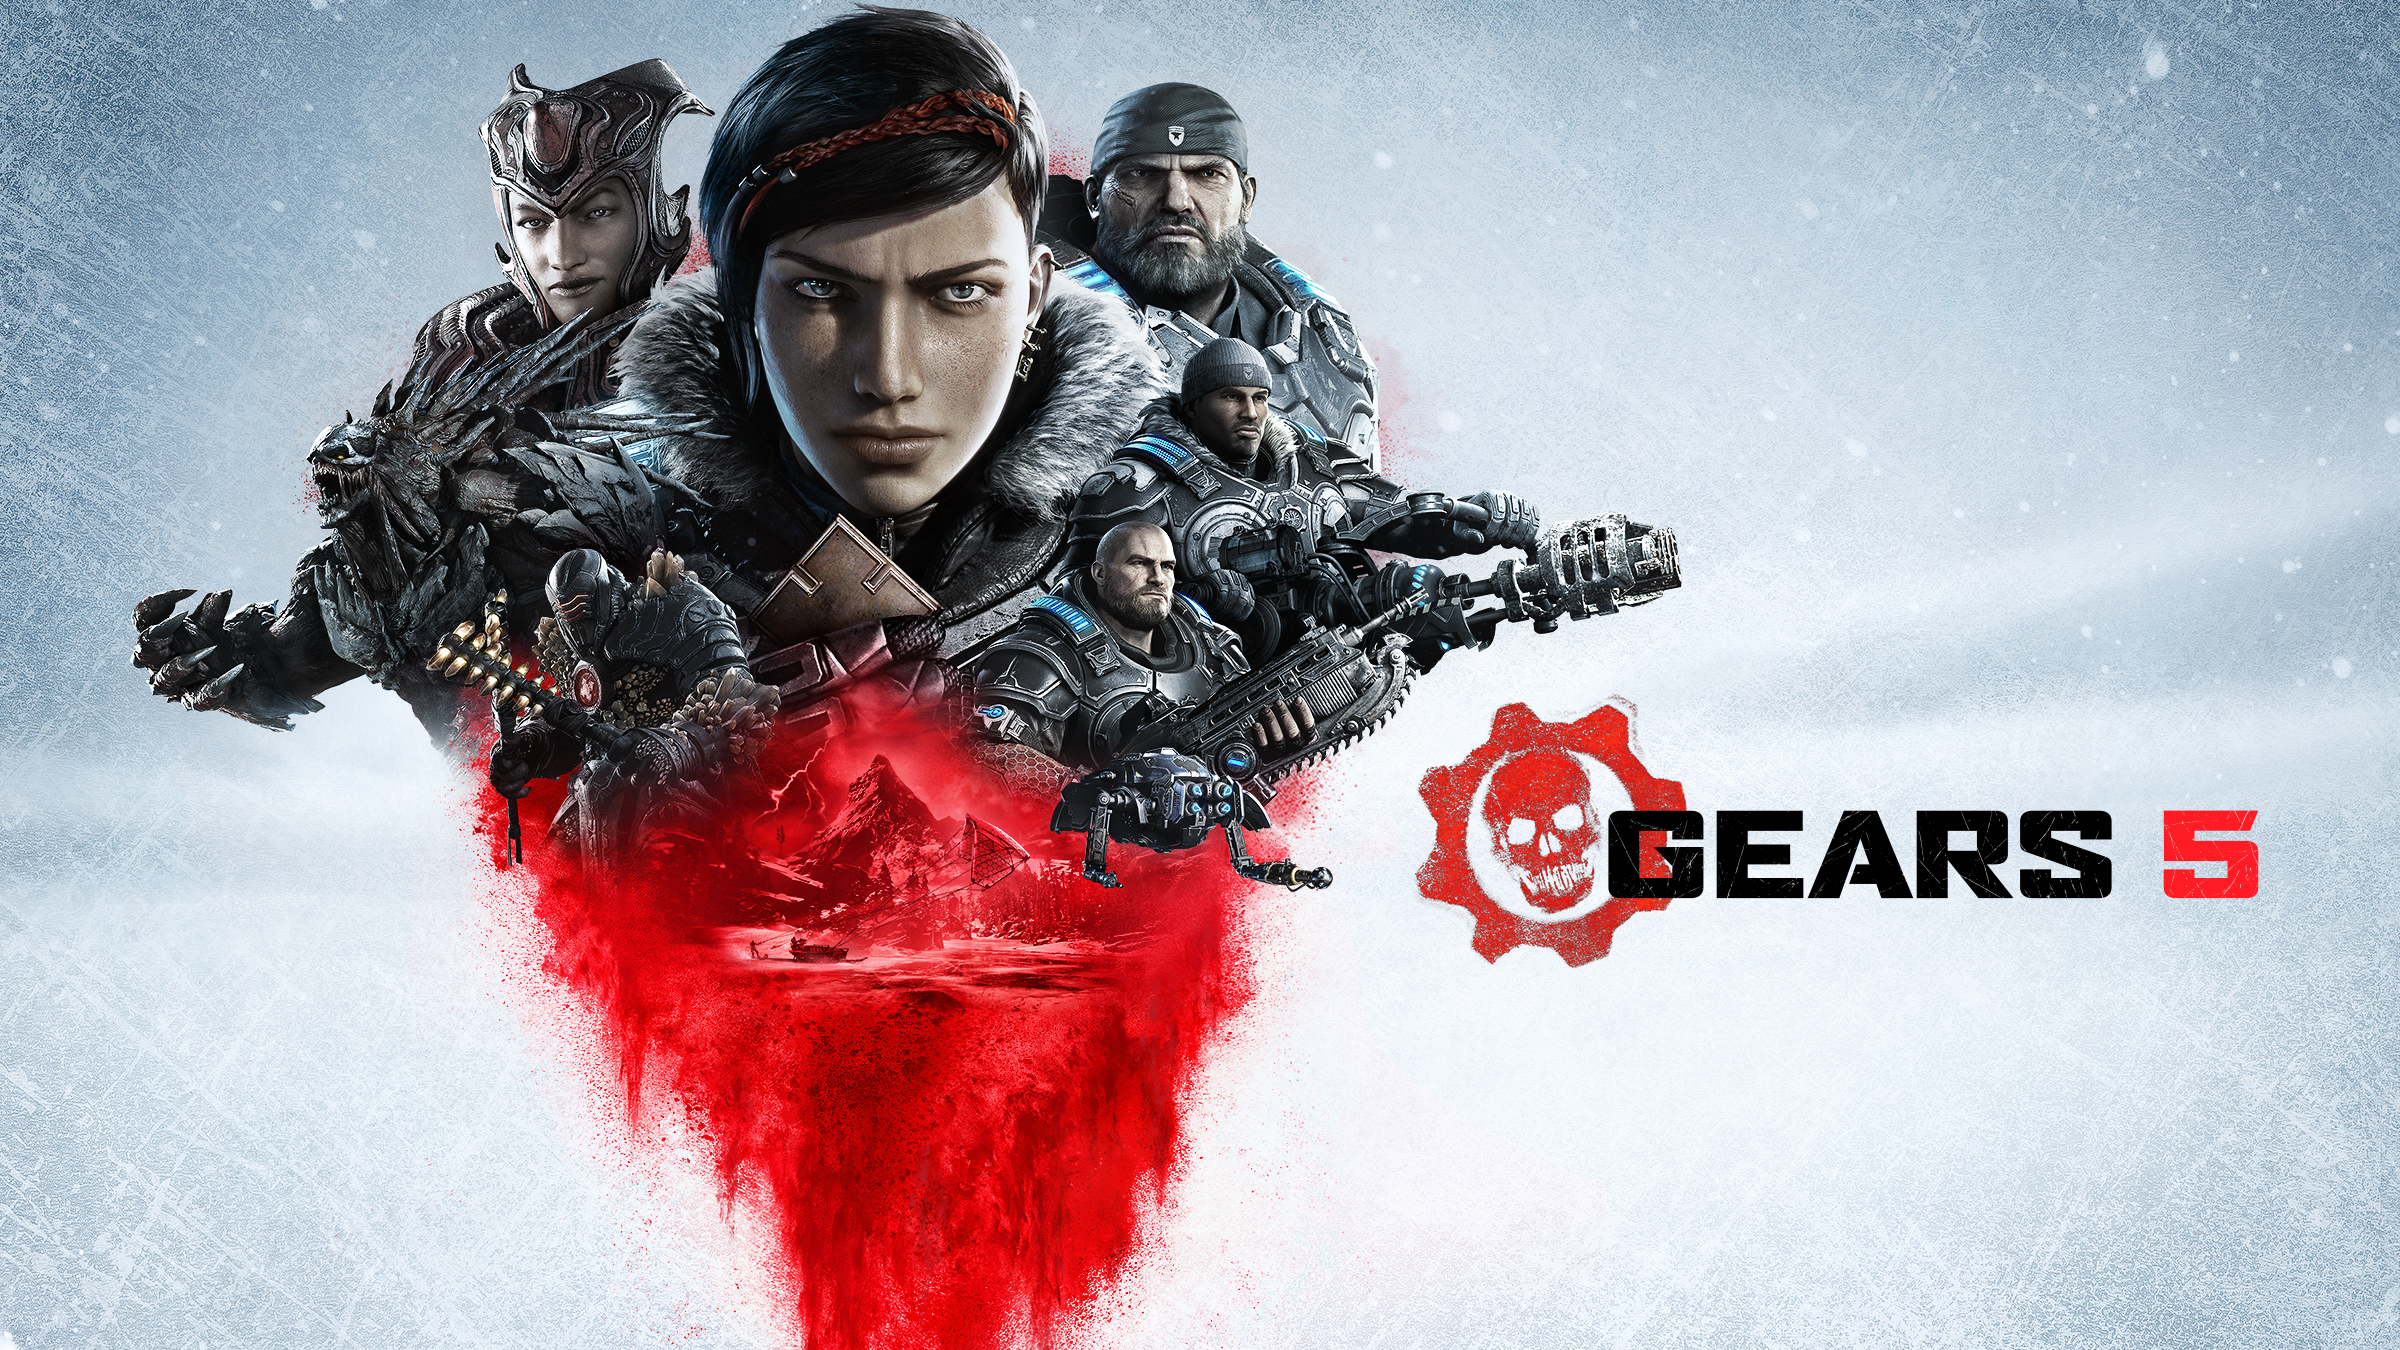 Deaf Game Review – Gears of War 5